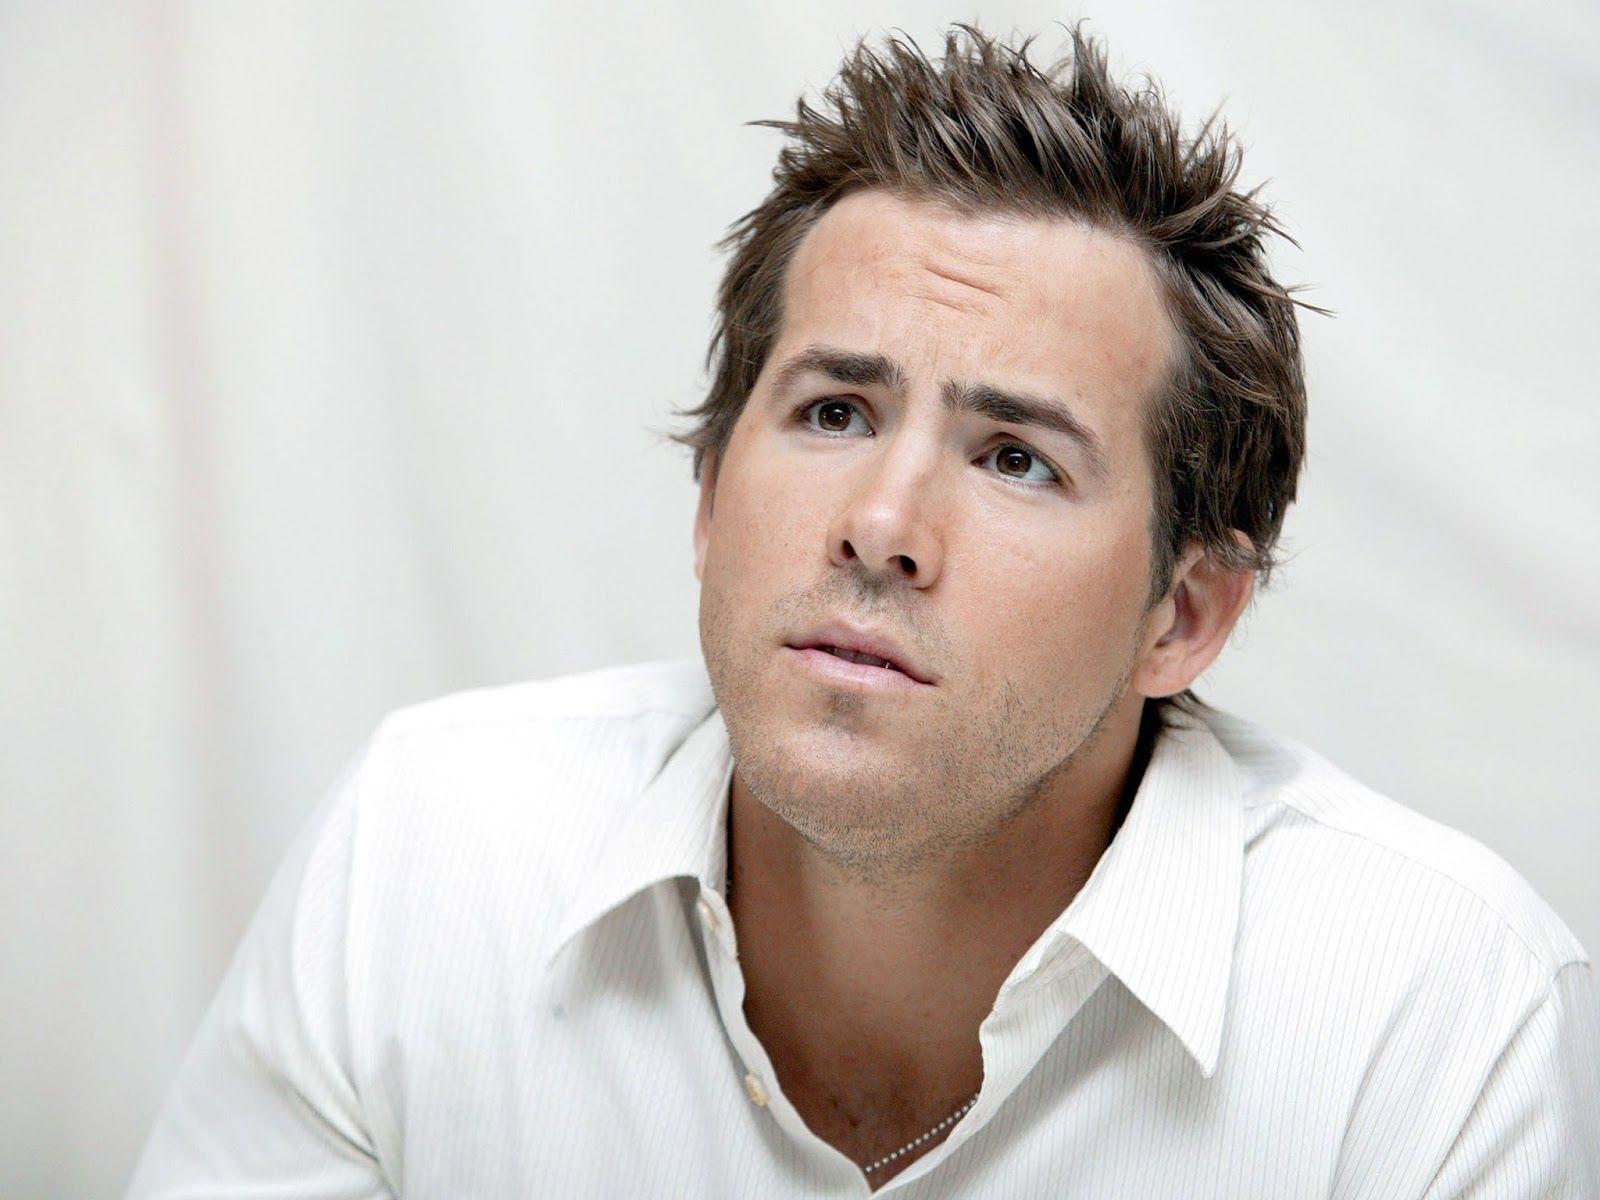 Ryan Reynolds pictures and hd wallpapers